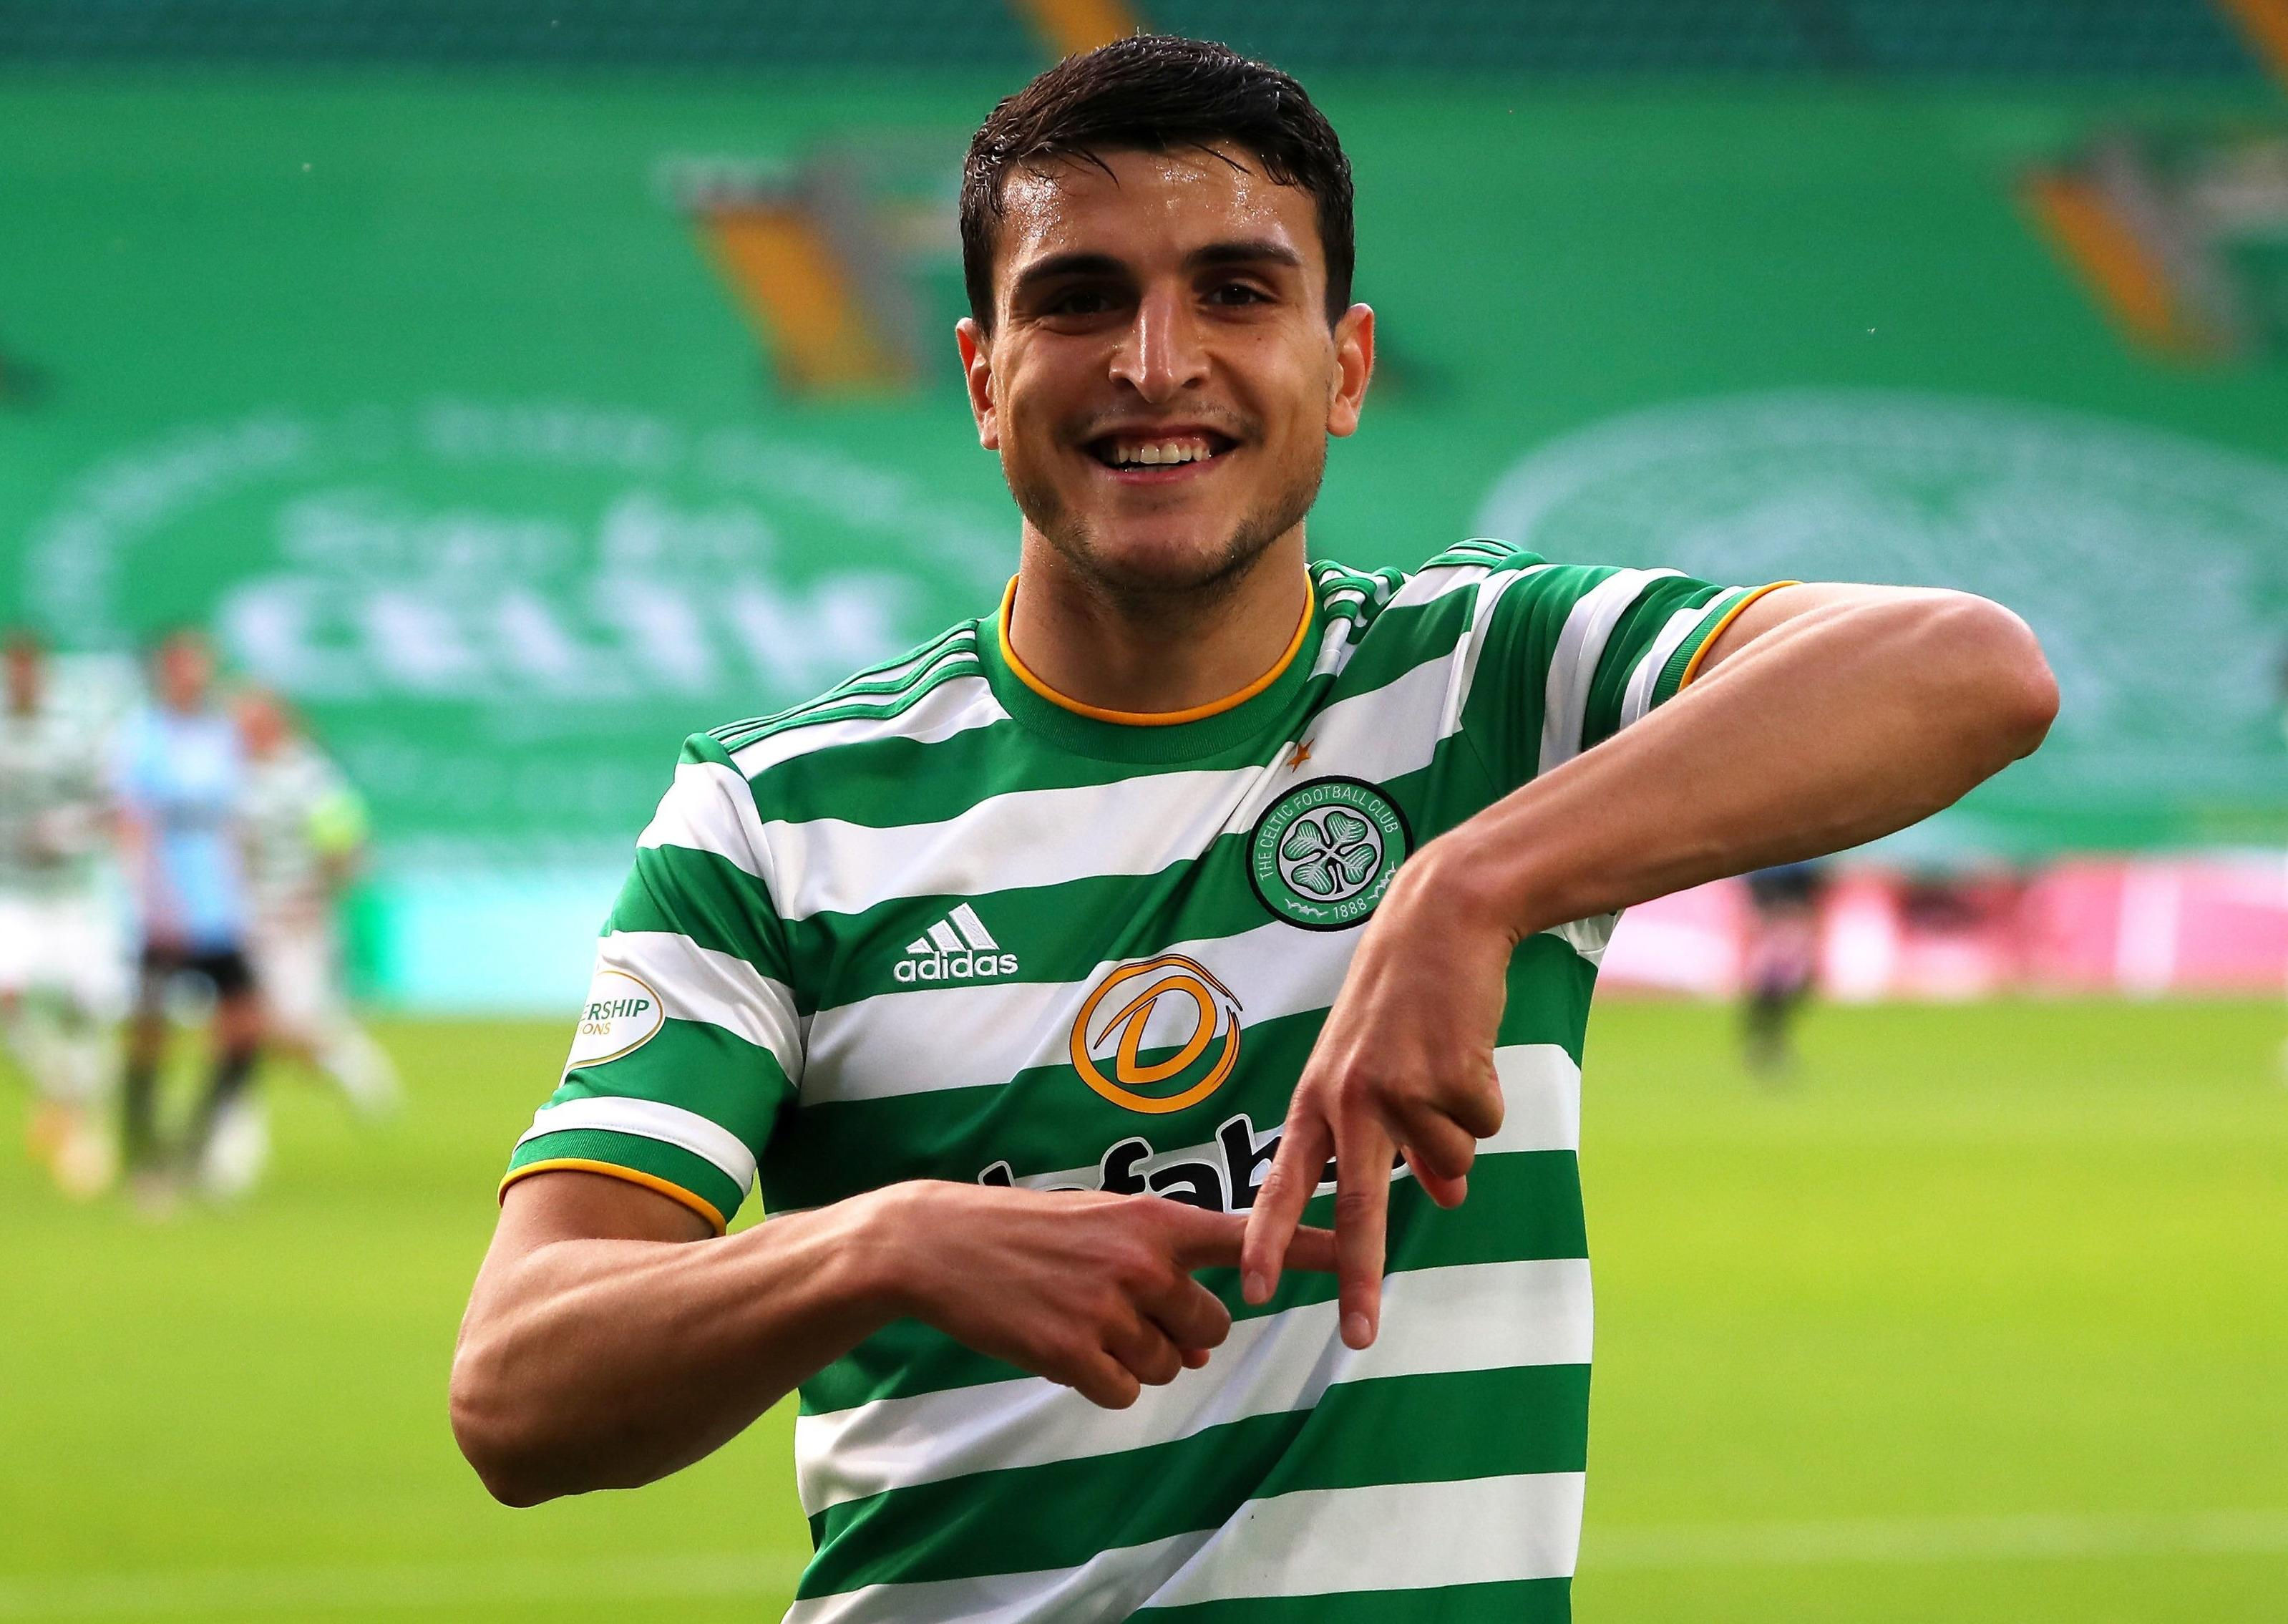 Celtic analysis: Revitalised Mohamed Elyounoussi looks like a man on a  mission | The Scotsman